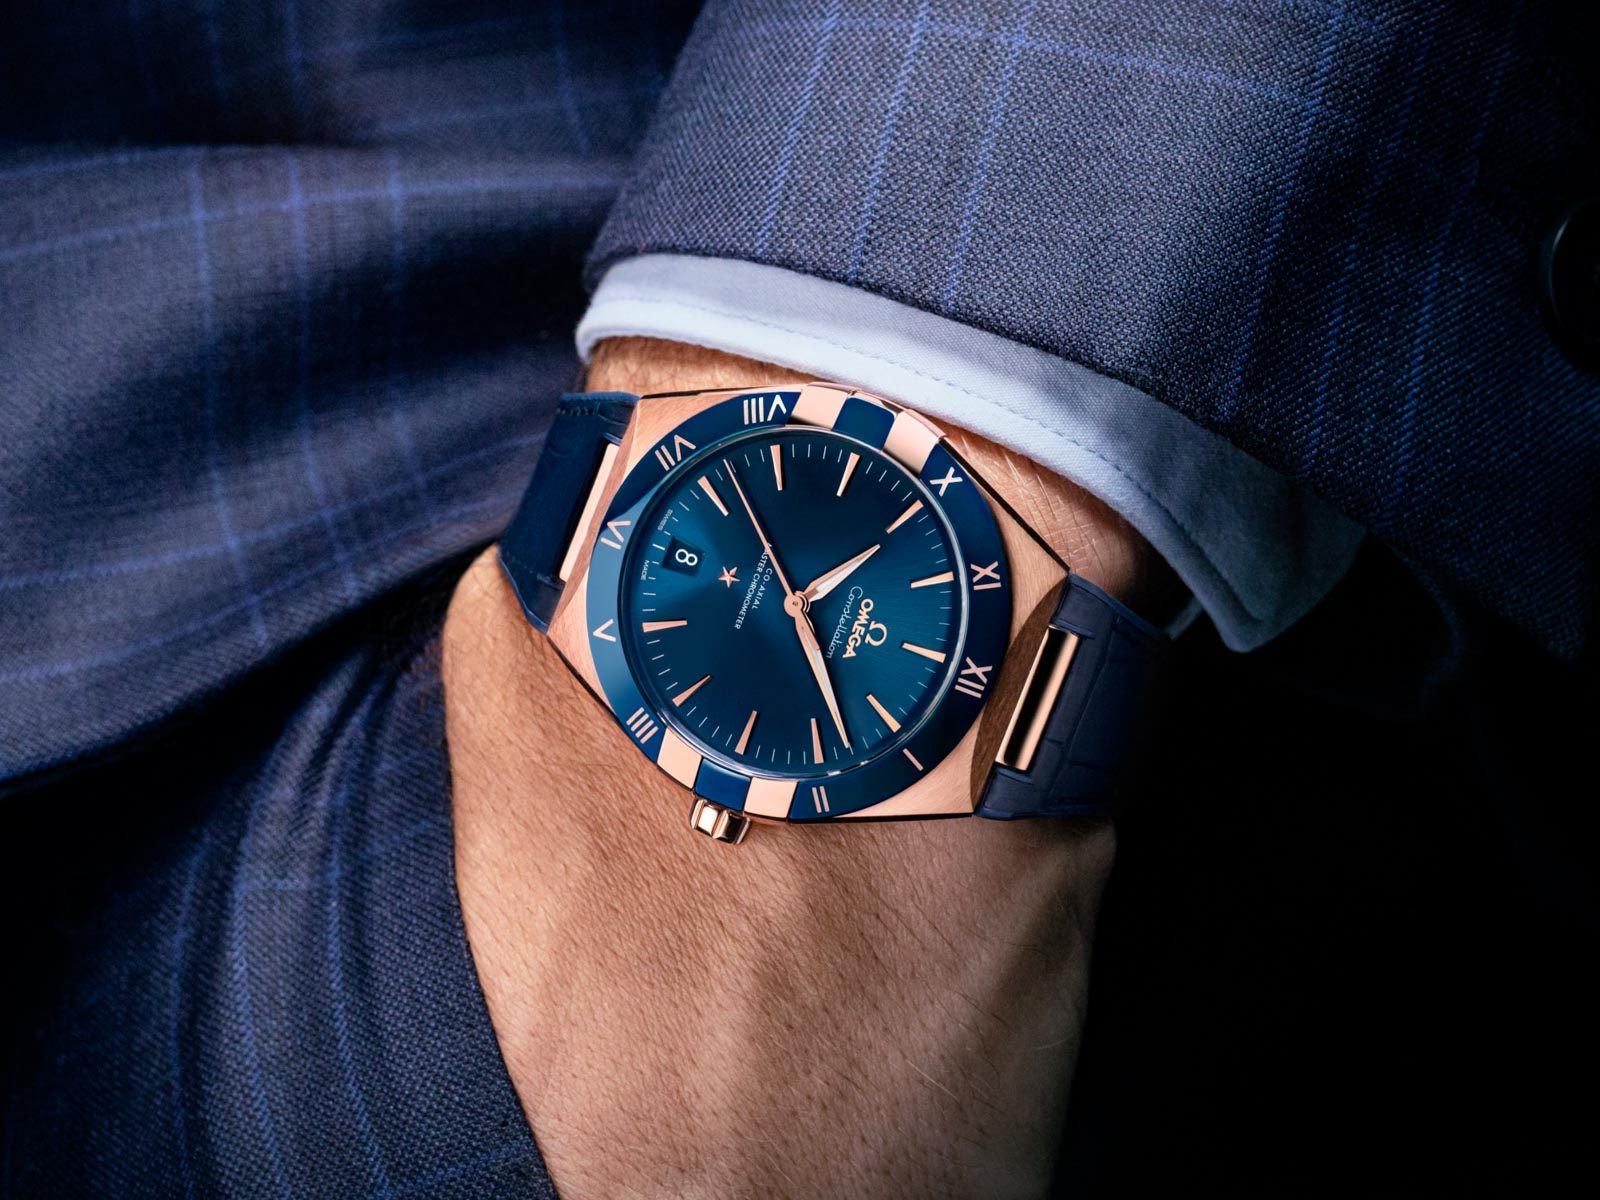 The male replica watch has blue dial.